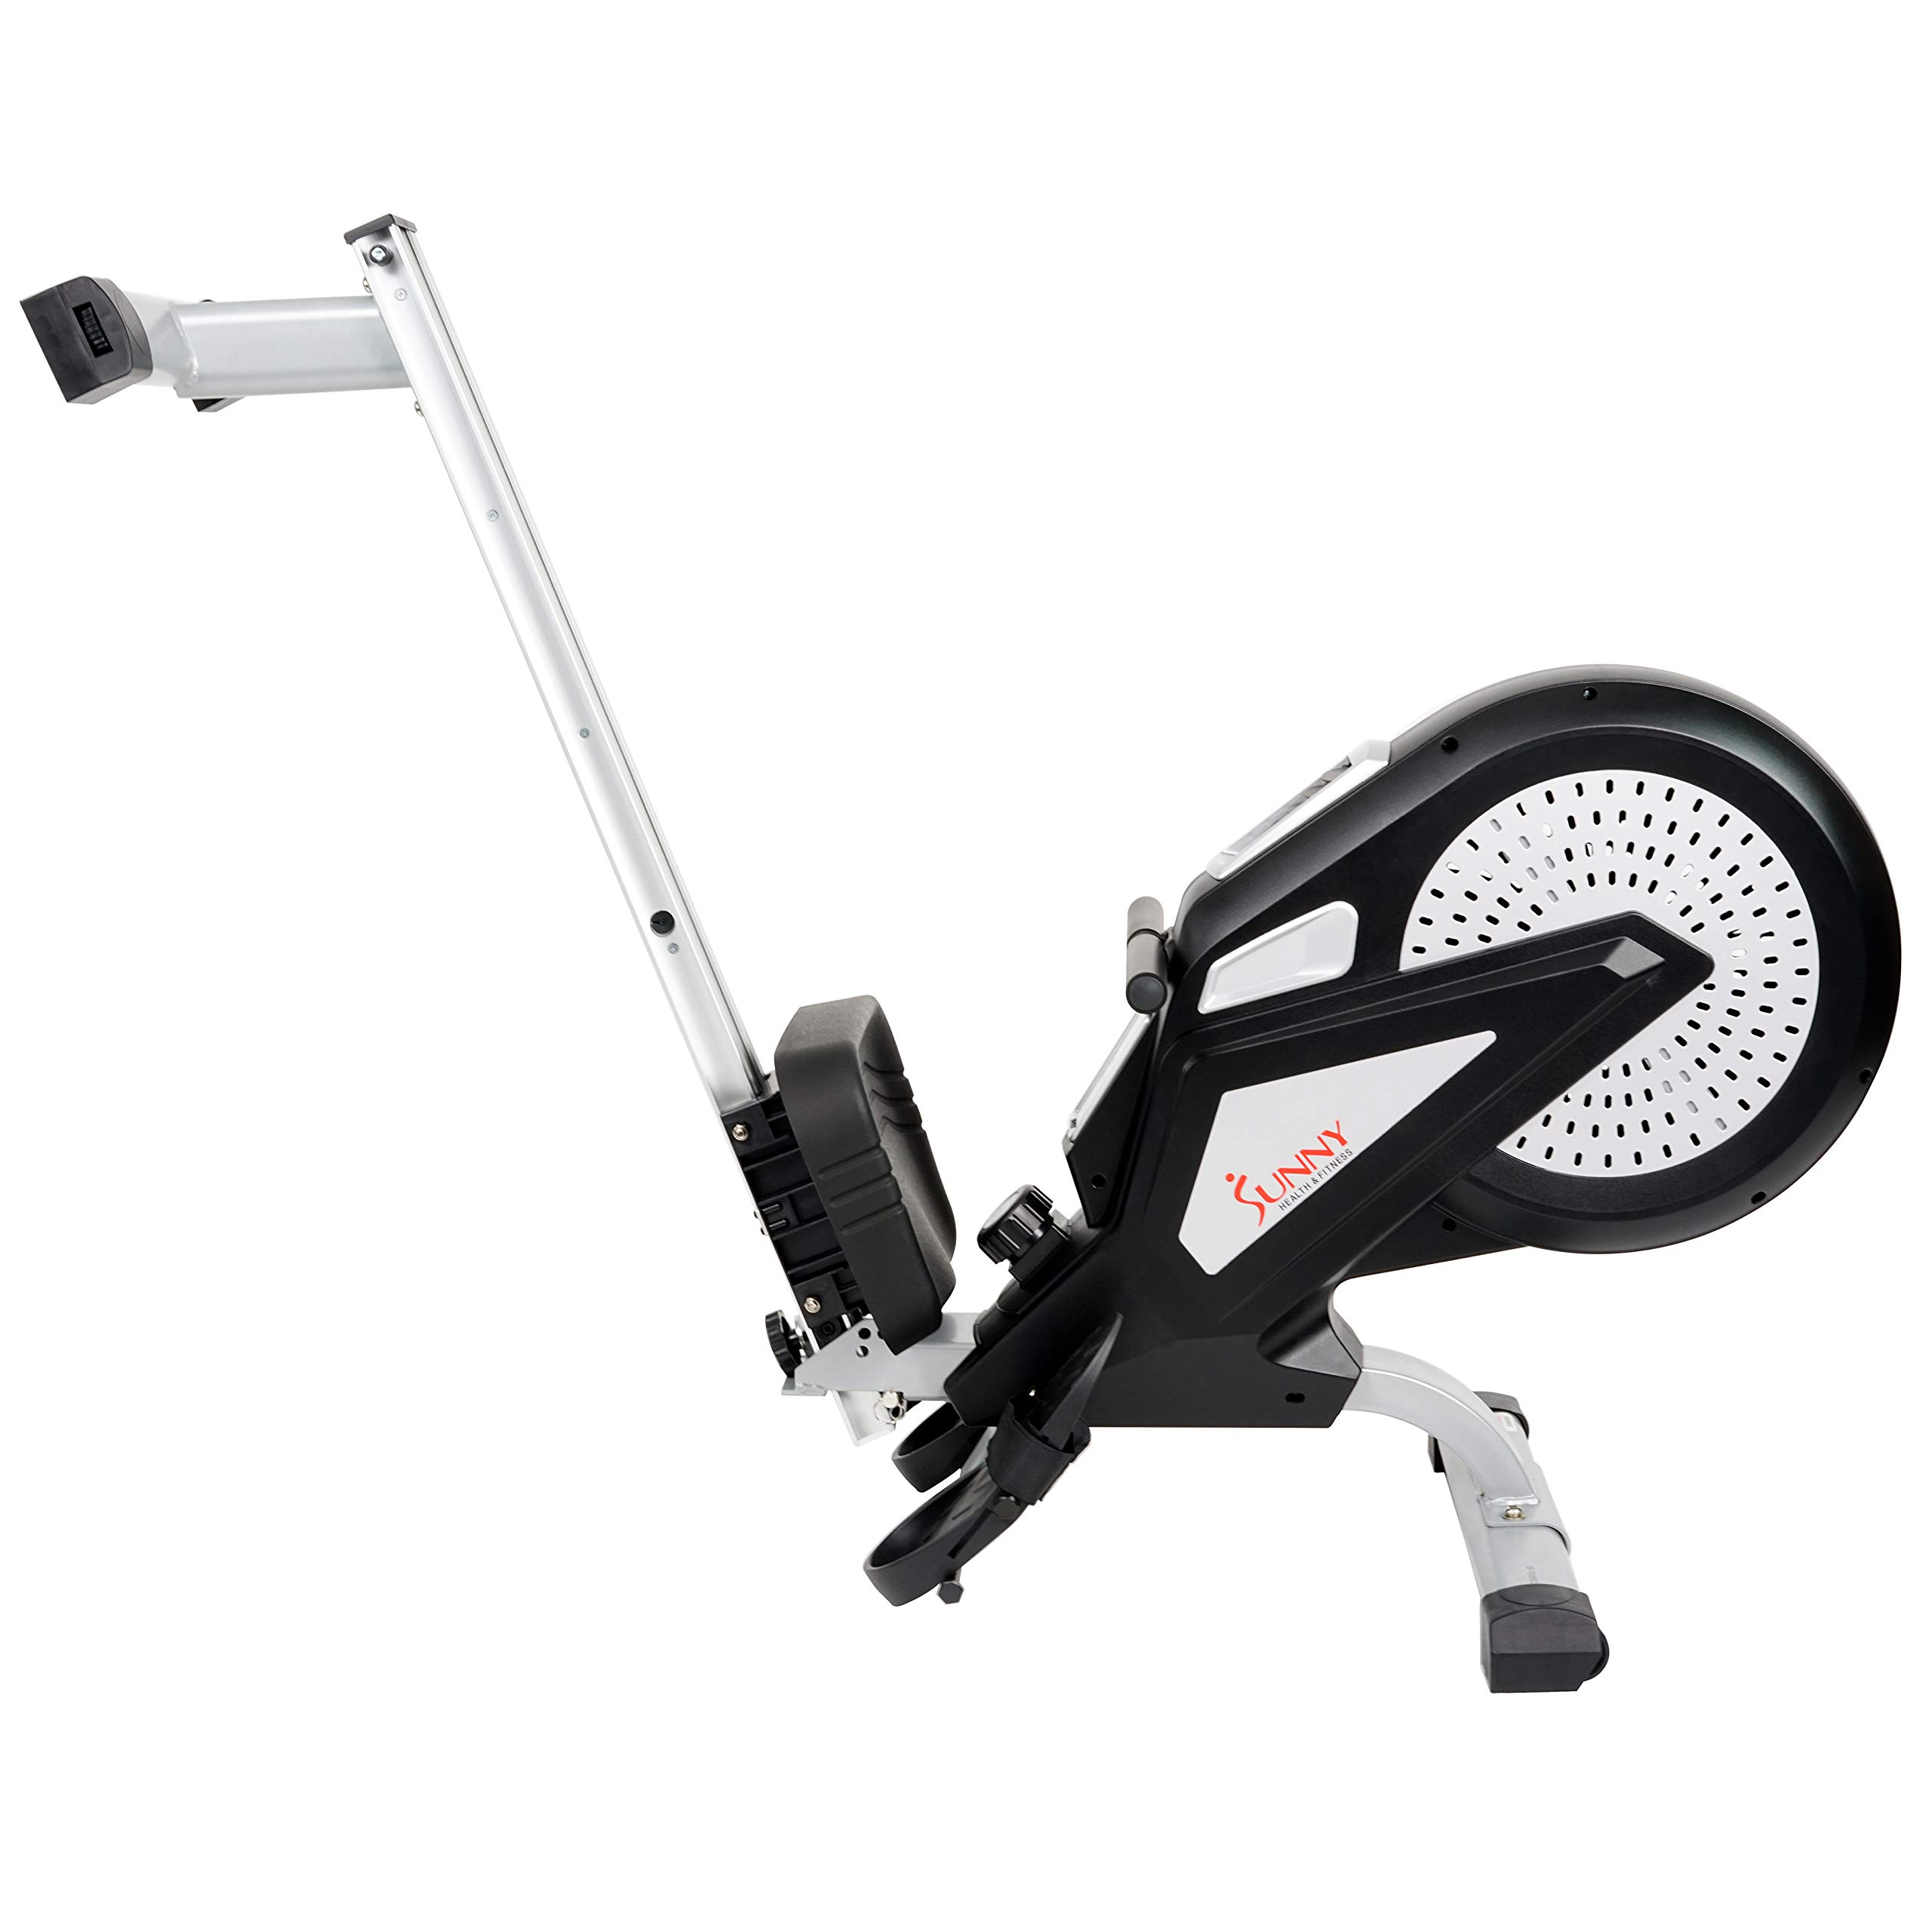 Sunny Health & Fitness Air Rower Rowing Machine w/ LCD Monitor, Dual Belt and Air Resistance SF-RW5623 by Sunny Health & Fitness (Image #10)